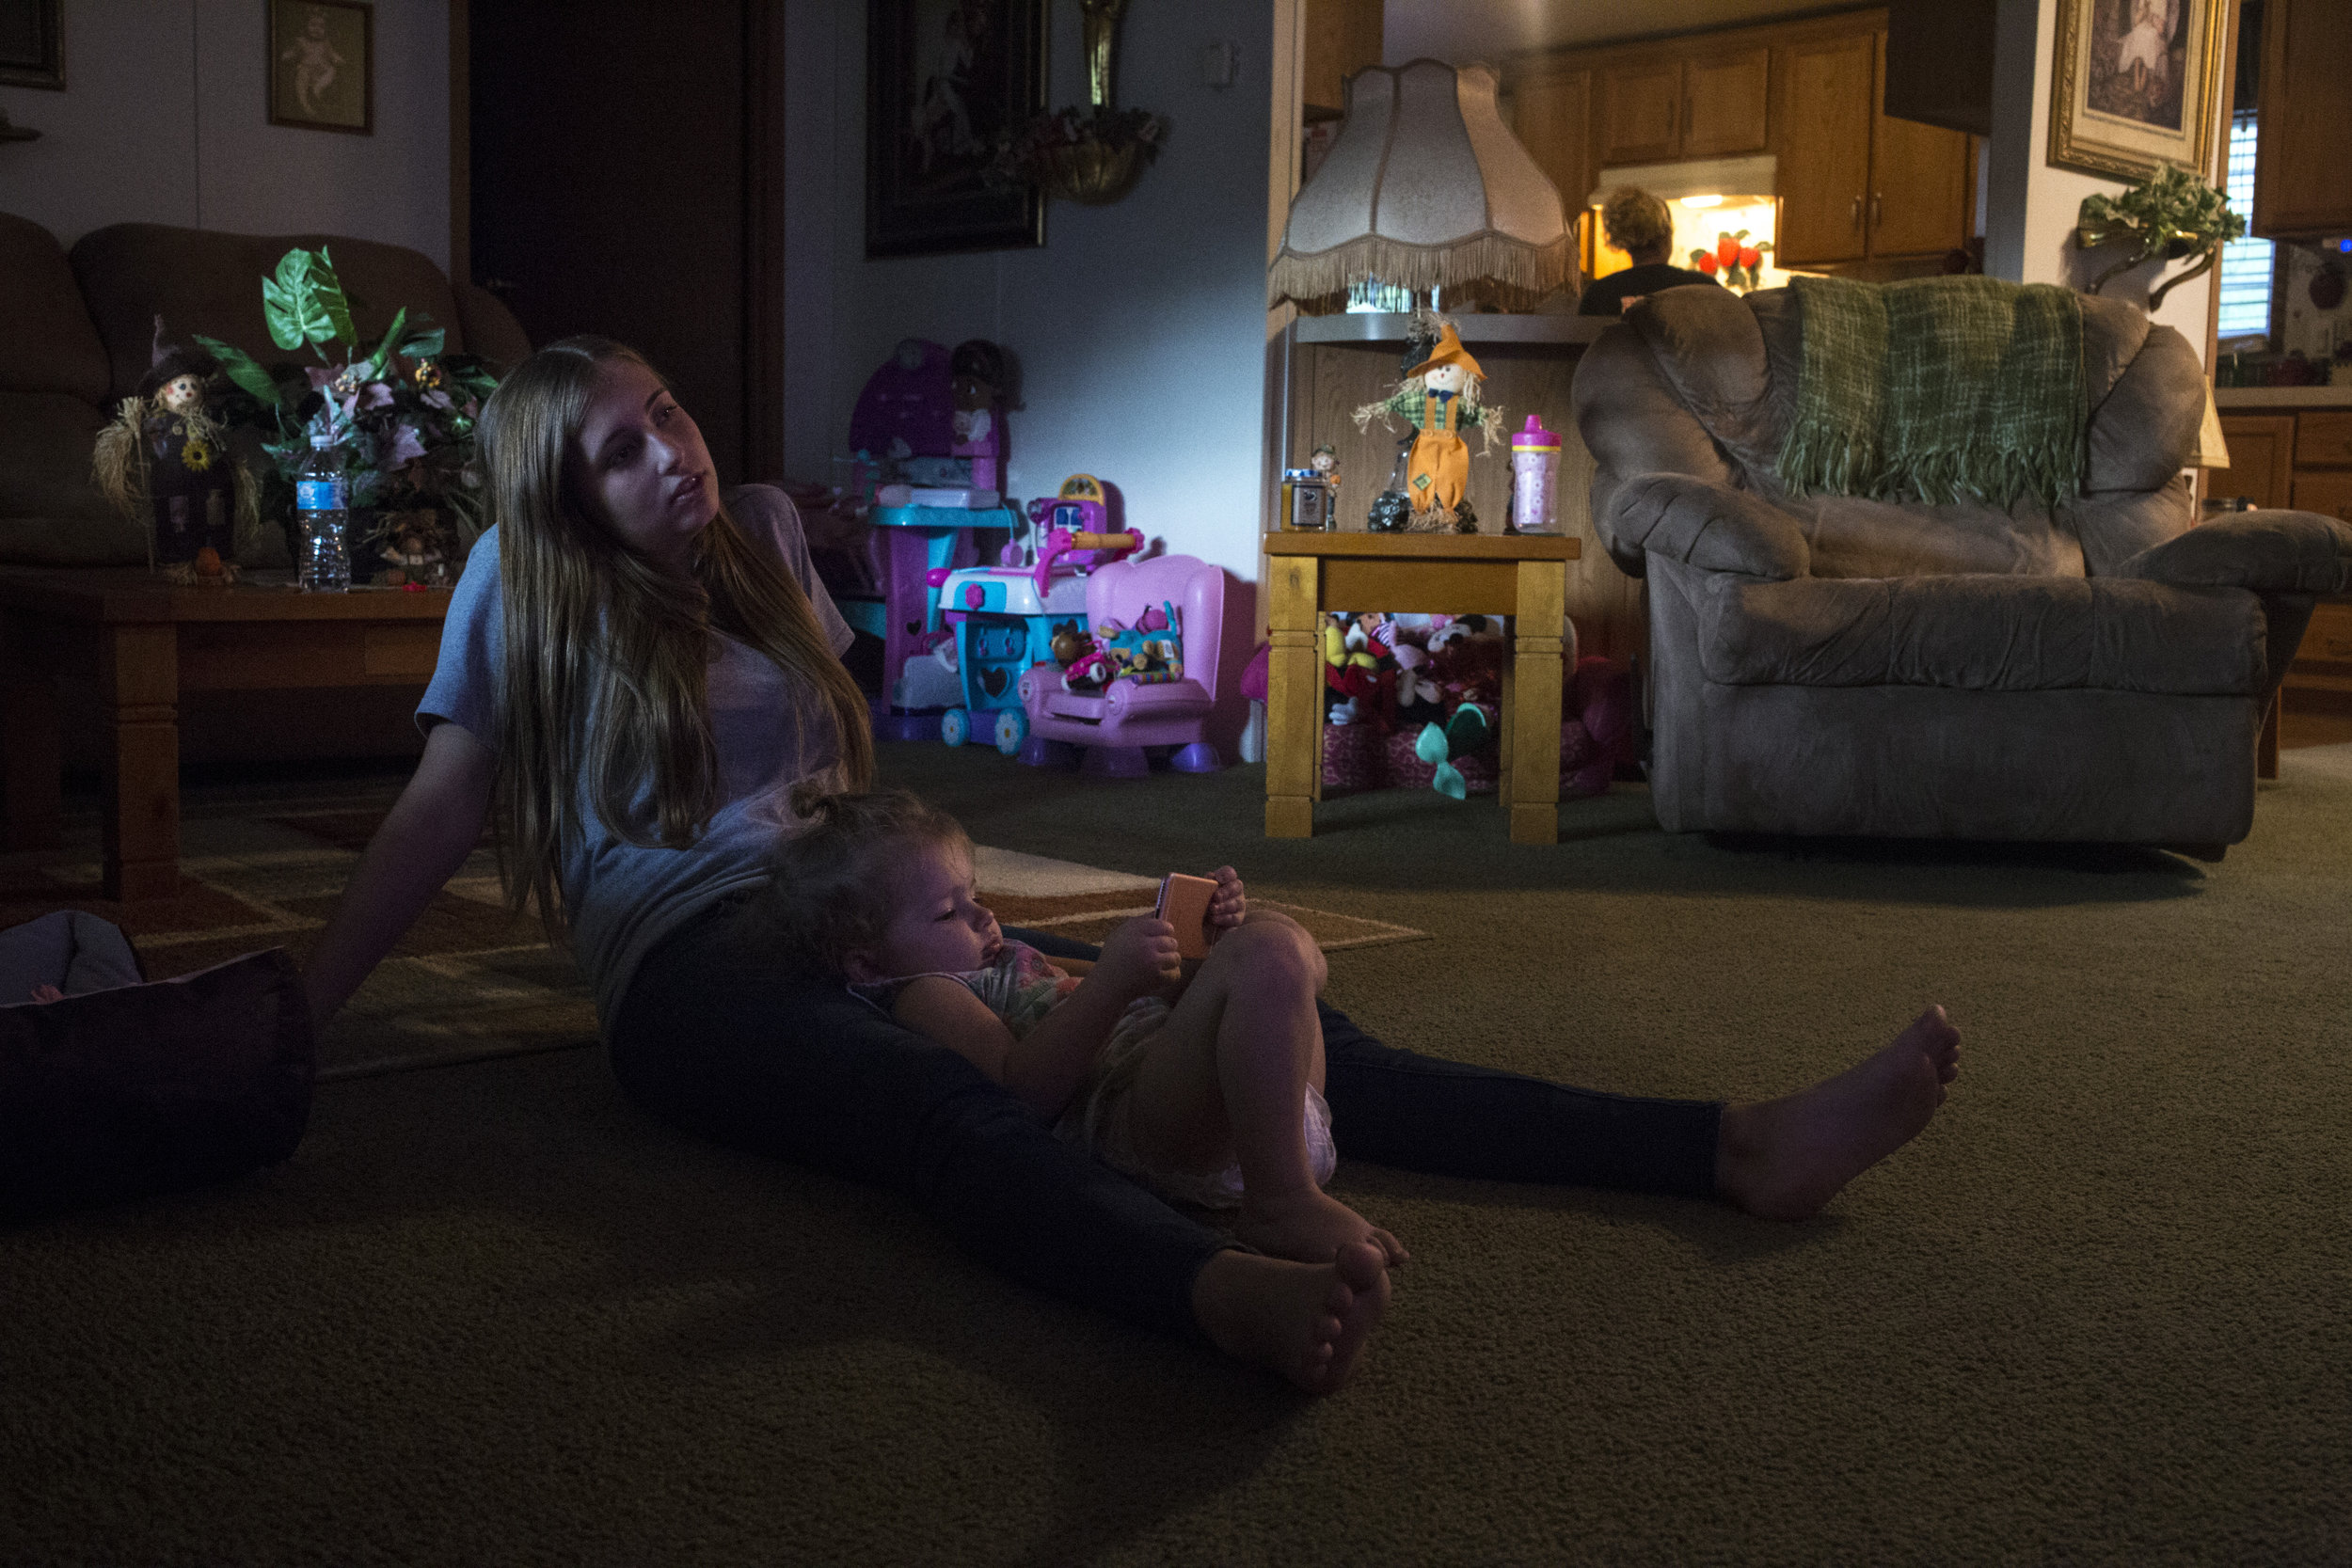 "Haley Jarvis, 17, watches ""Sing,"" a children's movie, with her daughter Paisley, 2, at her boyfriend's home in Langley, Ky., on Tuesday, September 26, 2017. Jarvis works part time at the local McDonalds and upon graduating will have to make a difficult decision for whether or not she wants to stay in the region where job opportunities have been on the decline. She said moving away to a university outside of the county would limit her access to childcare where she has support from her boyfriend's family and her own."